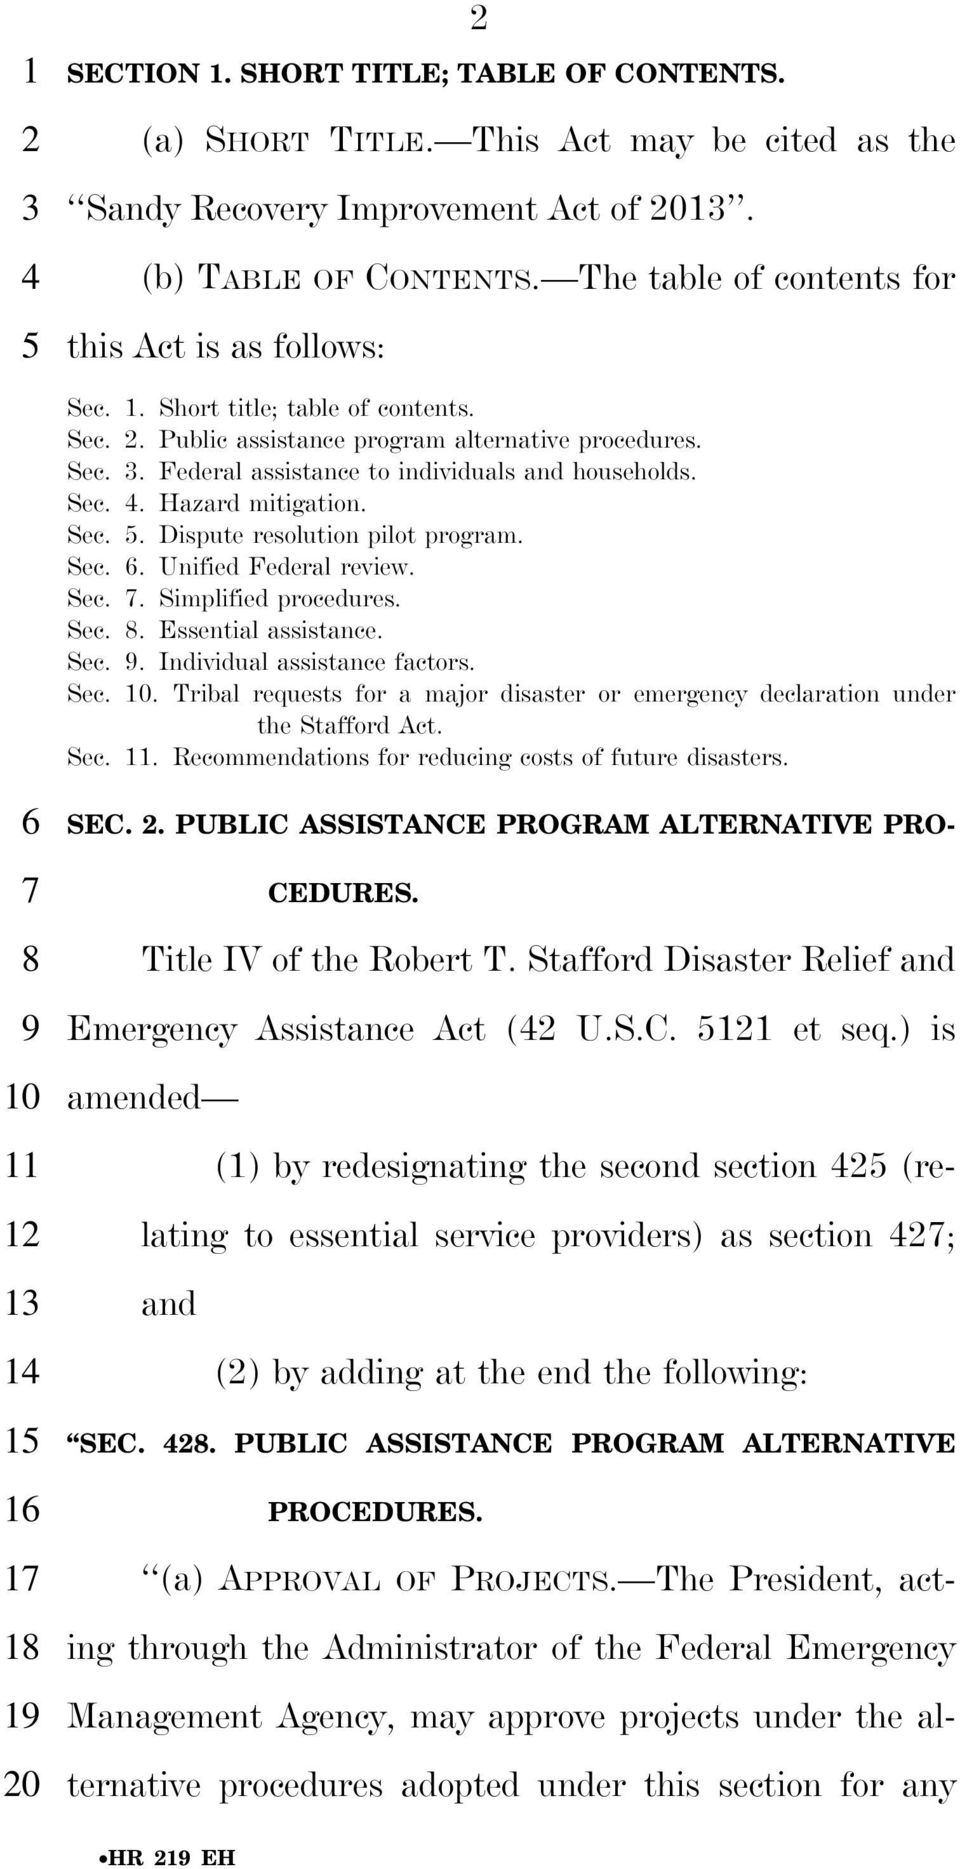 Sec.. Hazard mitigation. Sec.. Dispute resolution pilot program. Sec.. Unified Federal review. Sec.. Simplified procedures. Sec.. Essential assistance. Sec.. Individual assistance factors. Sec.. Tribal requests for a major disaster or emergency declaration under the Stafford Act.